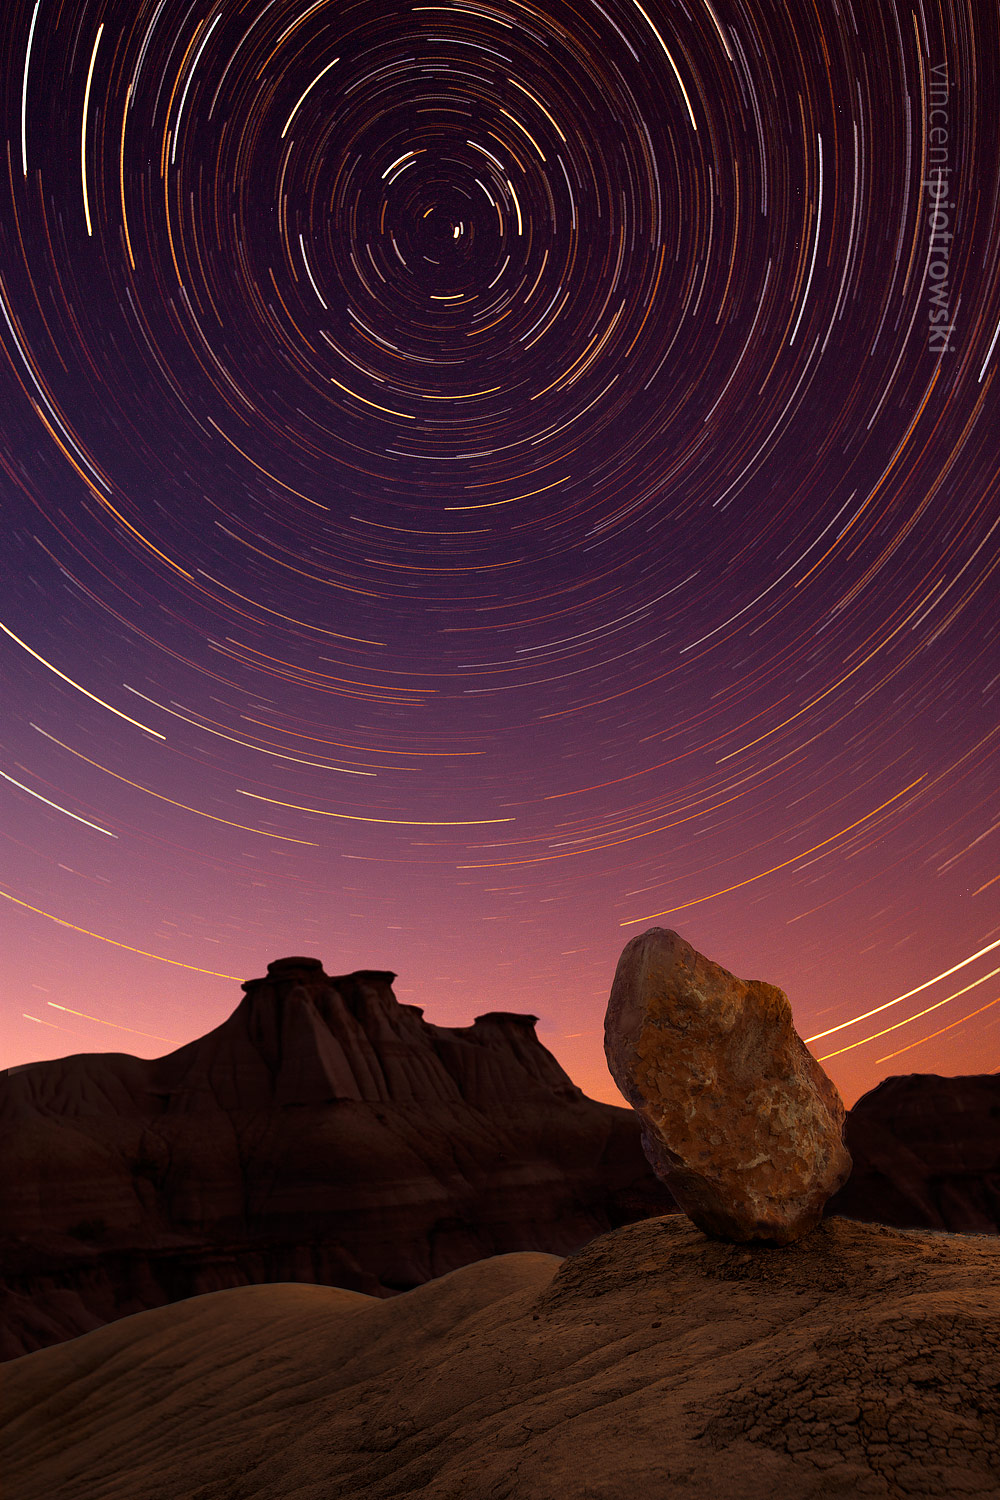 A star trail shot with a minimalist composition taken in Dinosaur Provincial Park Alberta using a long exposure